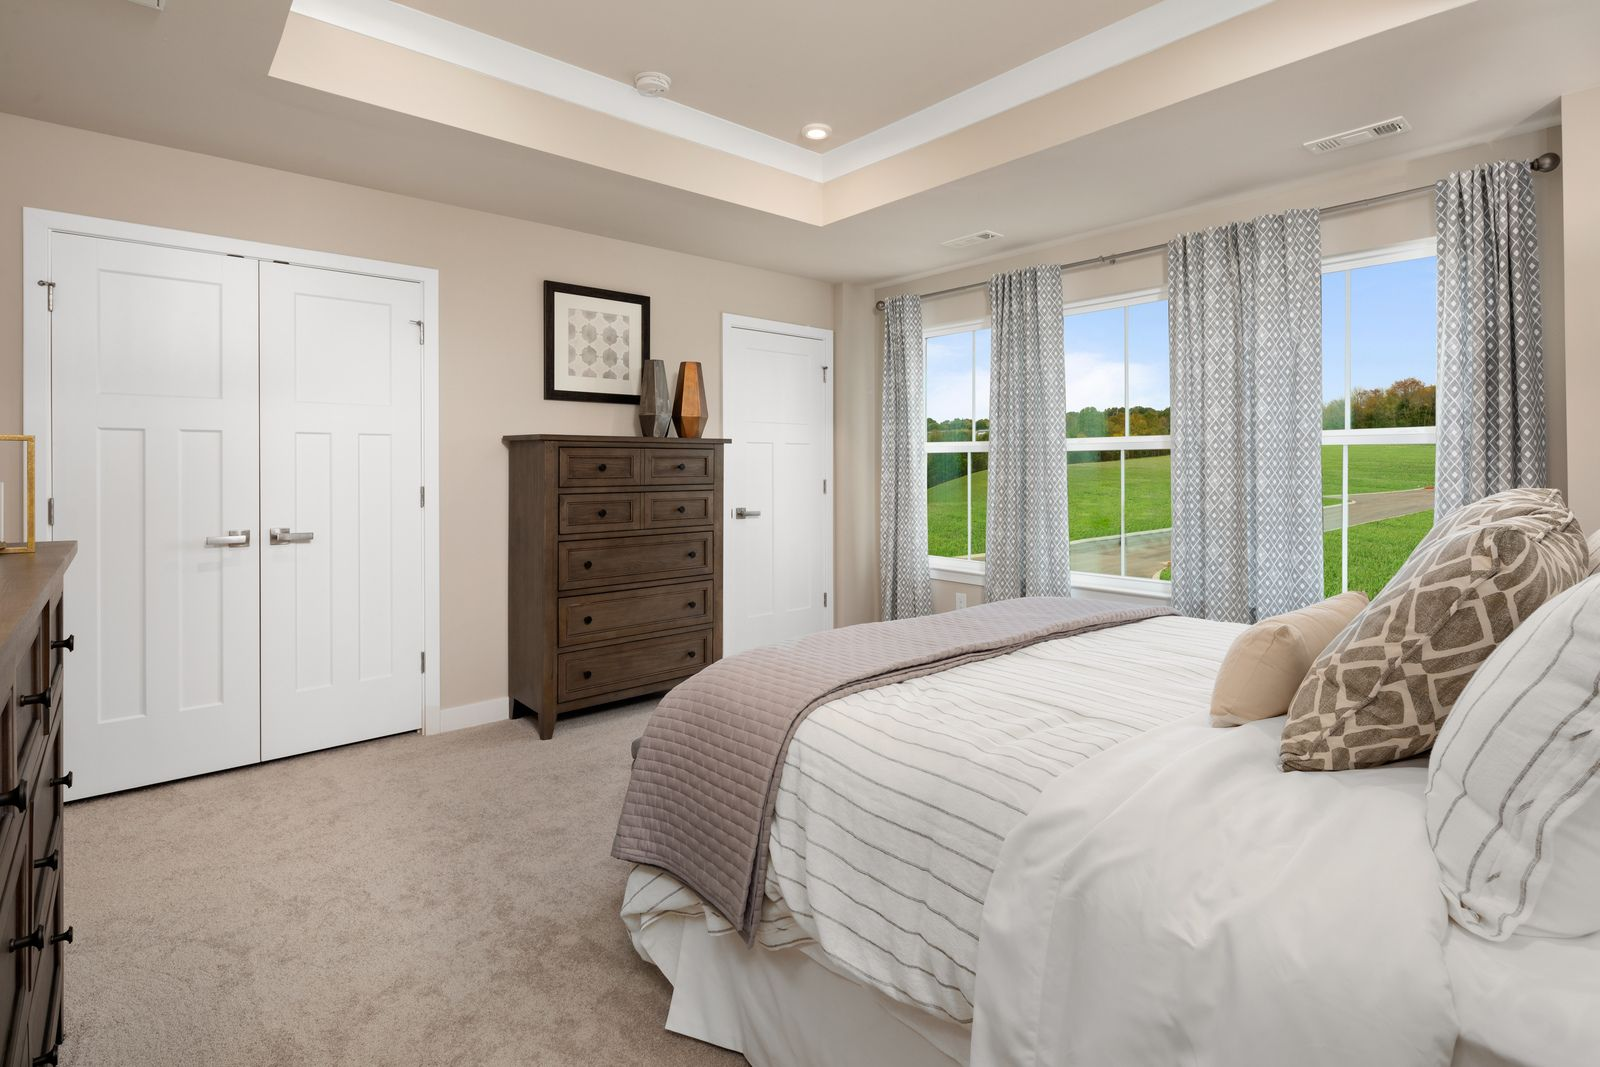 Bedroom featured in the Roxbury By Ryan Homes in Nashville, TN